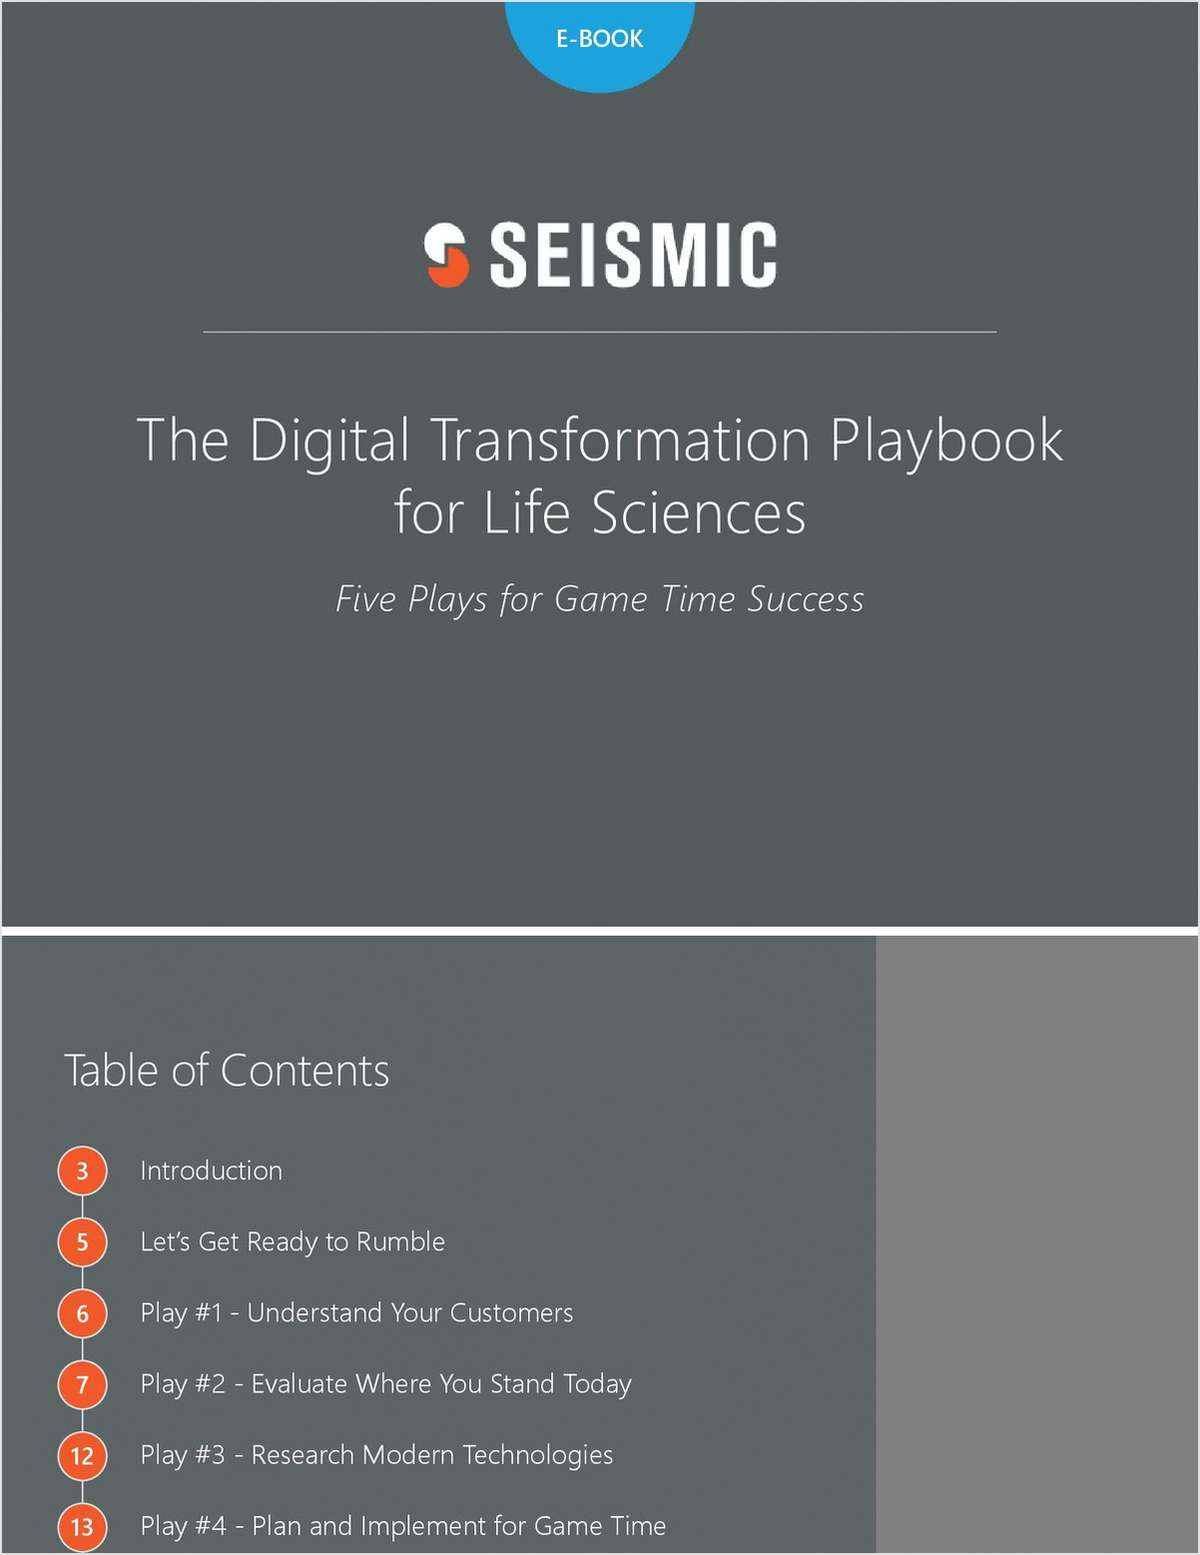 The Digital Transformation Playbook for Life Sciences